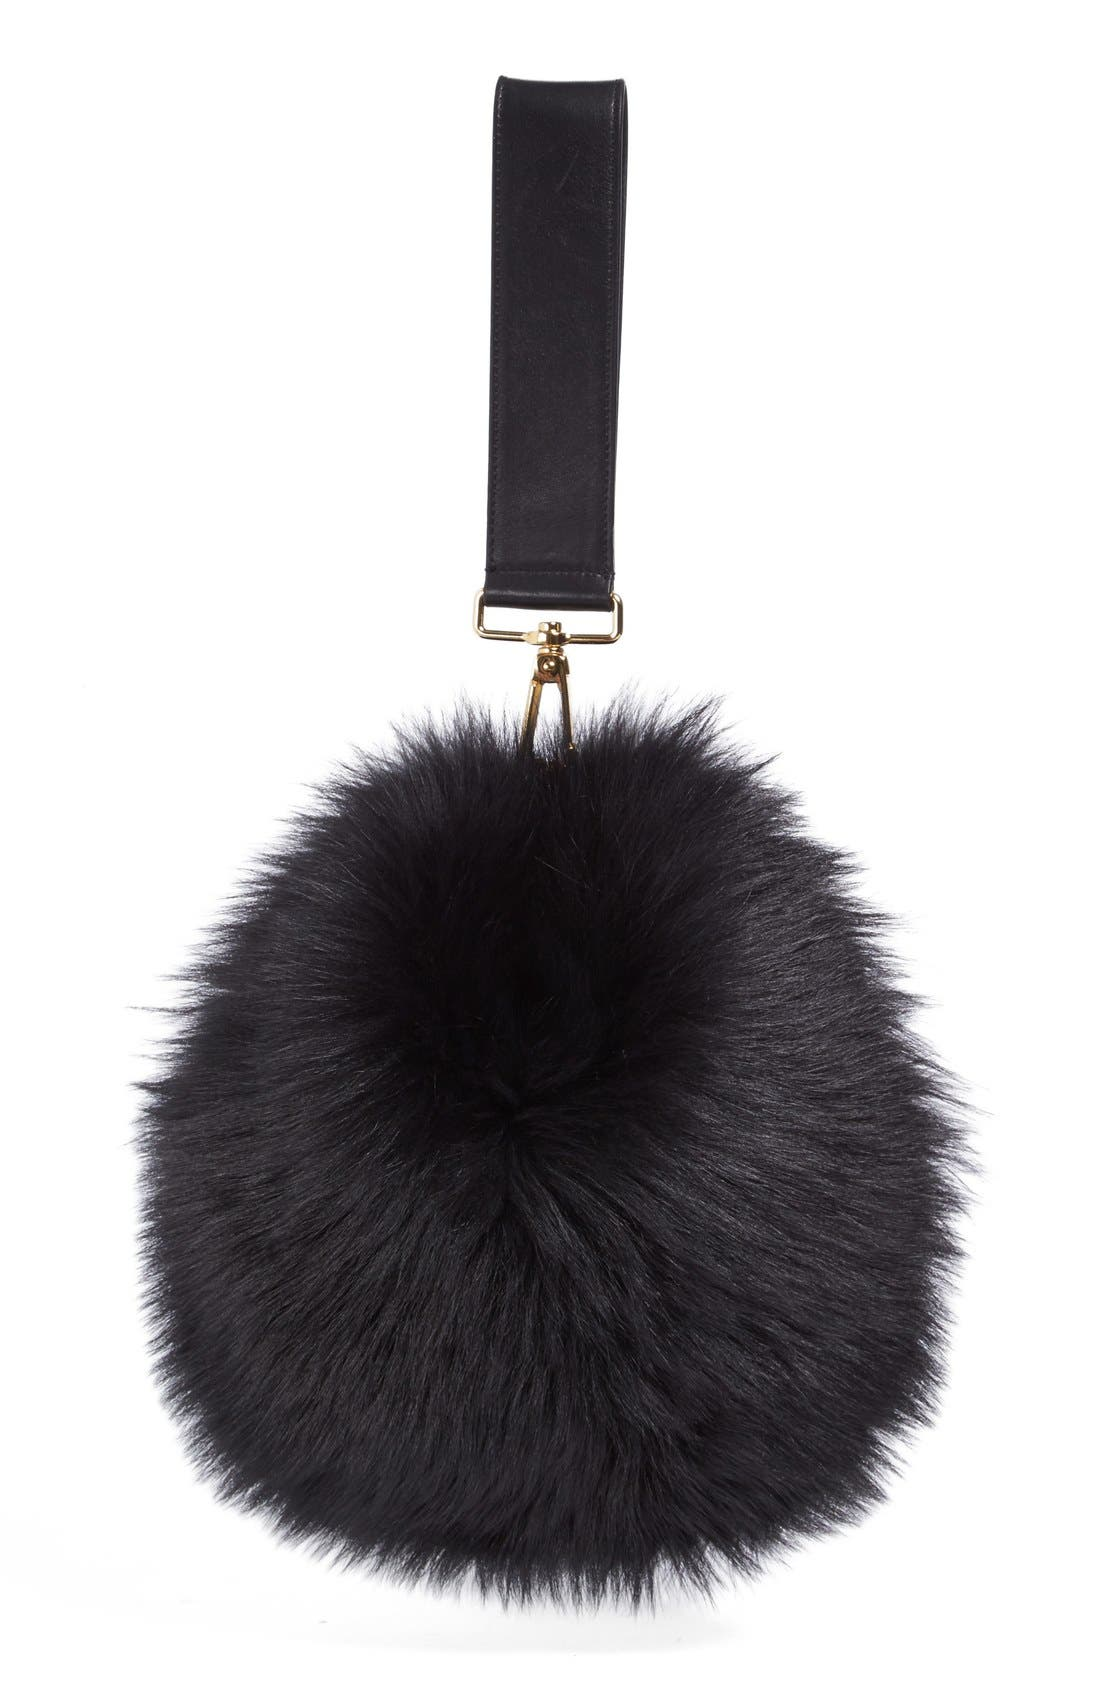 Alternate Image 1 Selected - Simone Rocha Genuine Shearling Puff Clutch